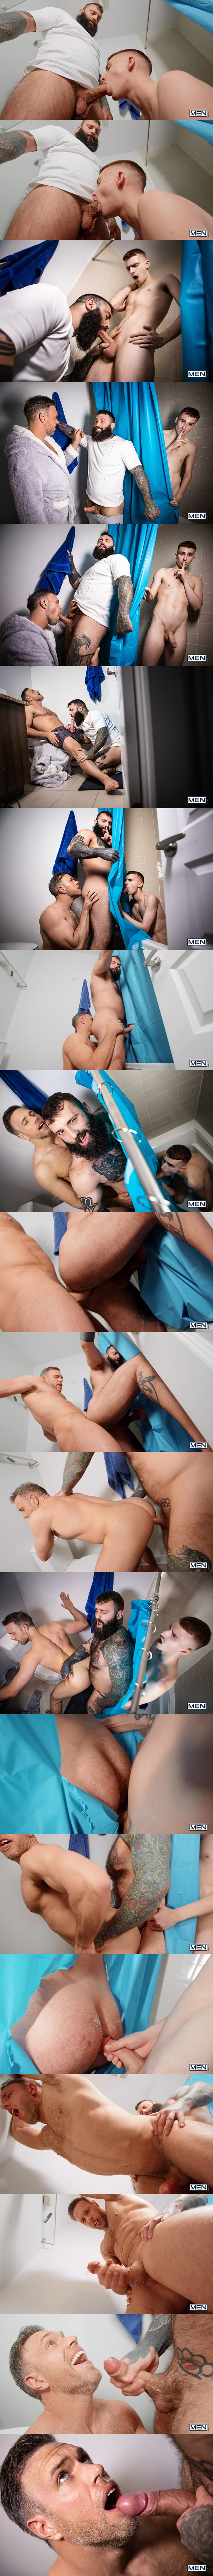 Alex Mecum, Markus Kage and Ryan Jacobs have a raw threesome in the bathroom before Markus fucks the cum out of Alex and gives him a facial in Glory-ous Shower Fuck at Men 01